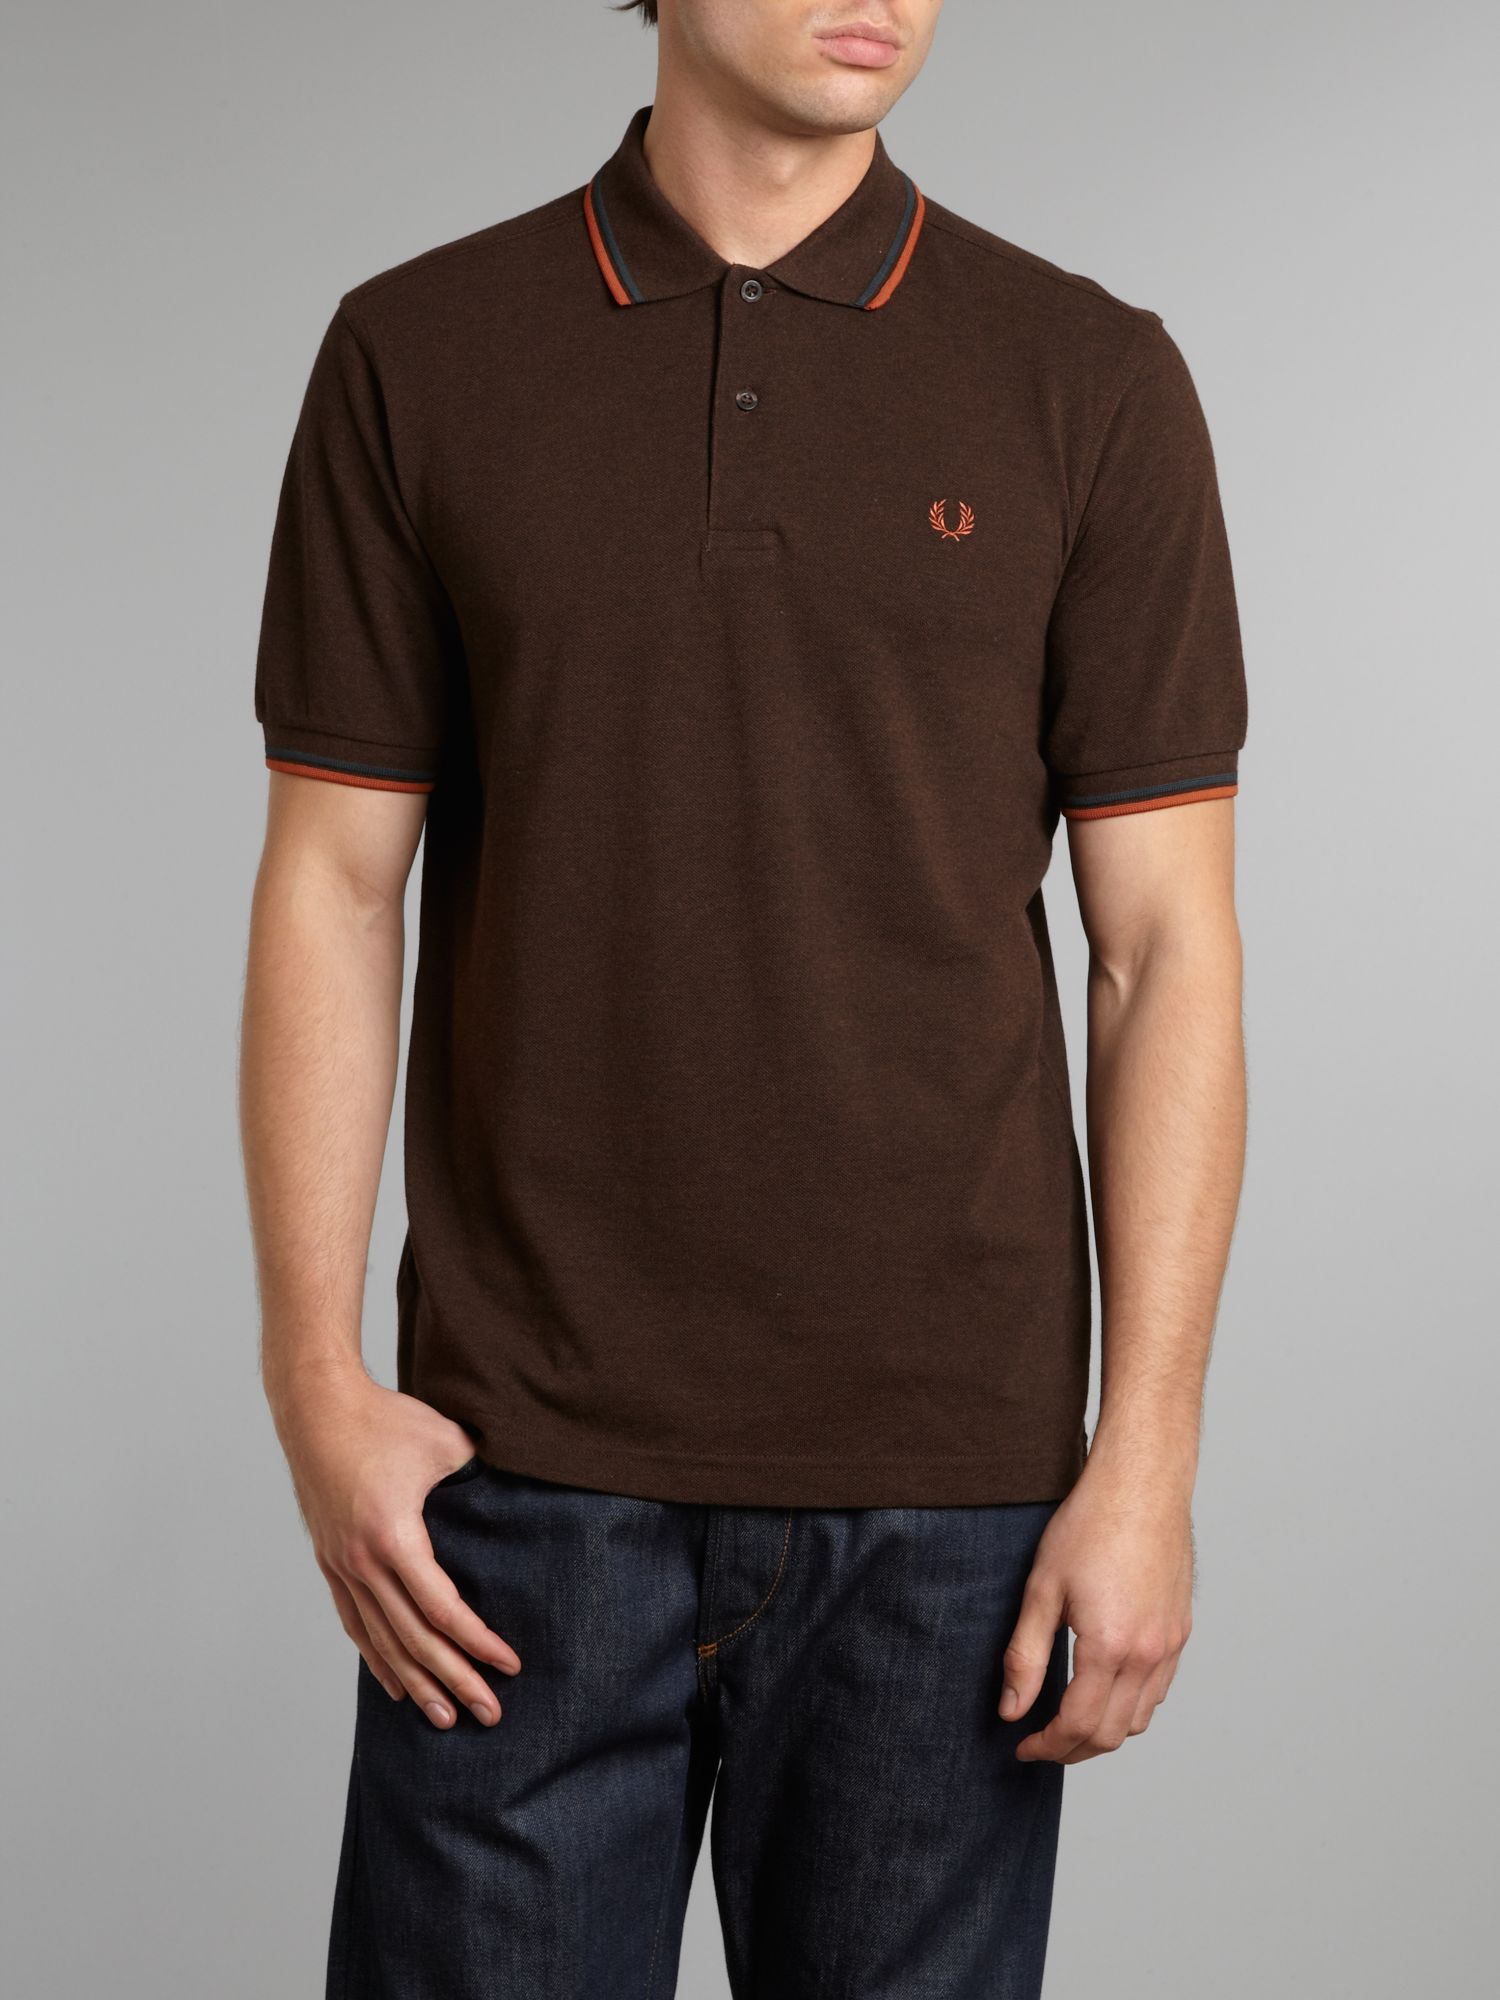 lyst fred perry classic twin tipped polo shirt in brown for men. Black Bedroom Furniture Sets. Home Design Ideas